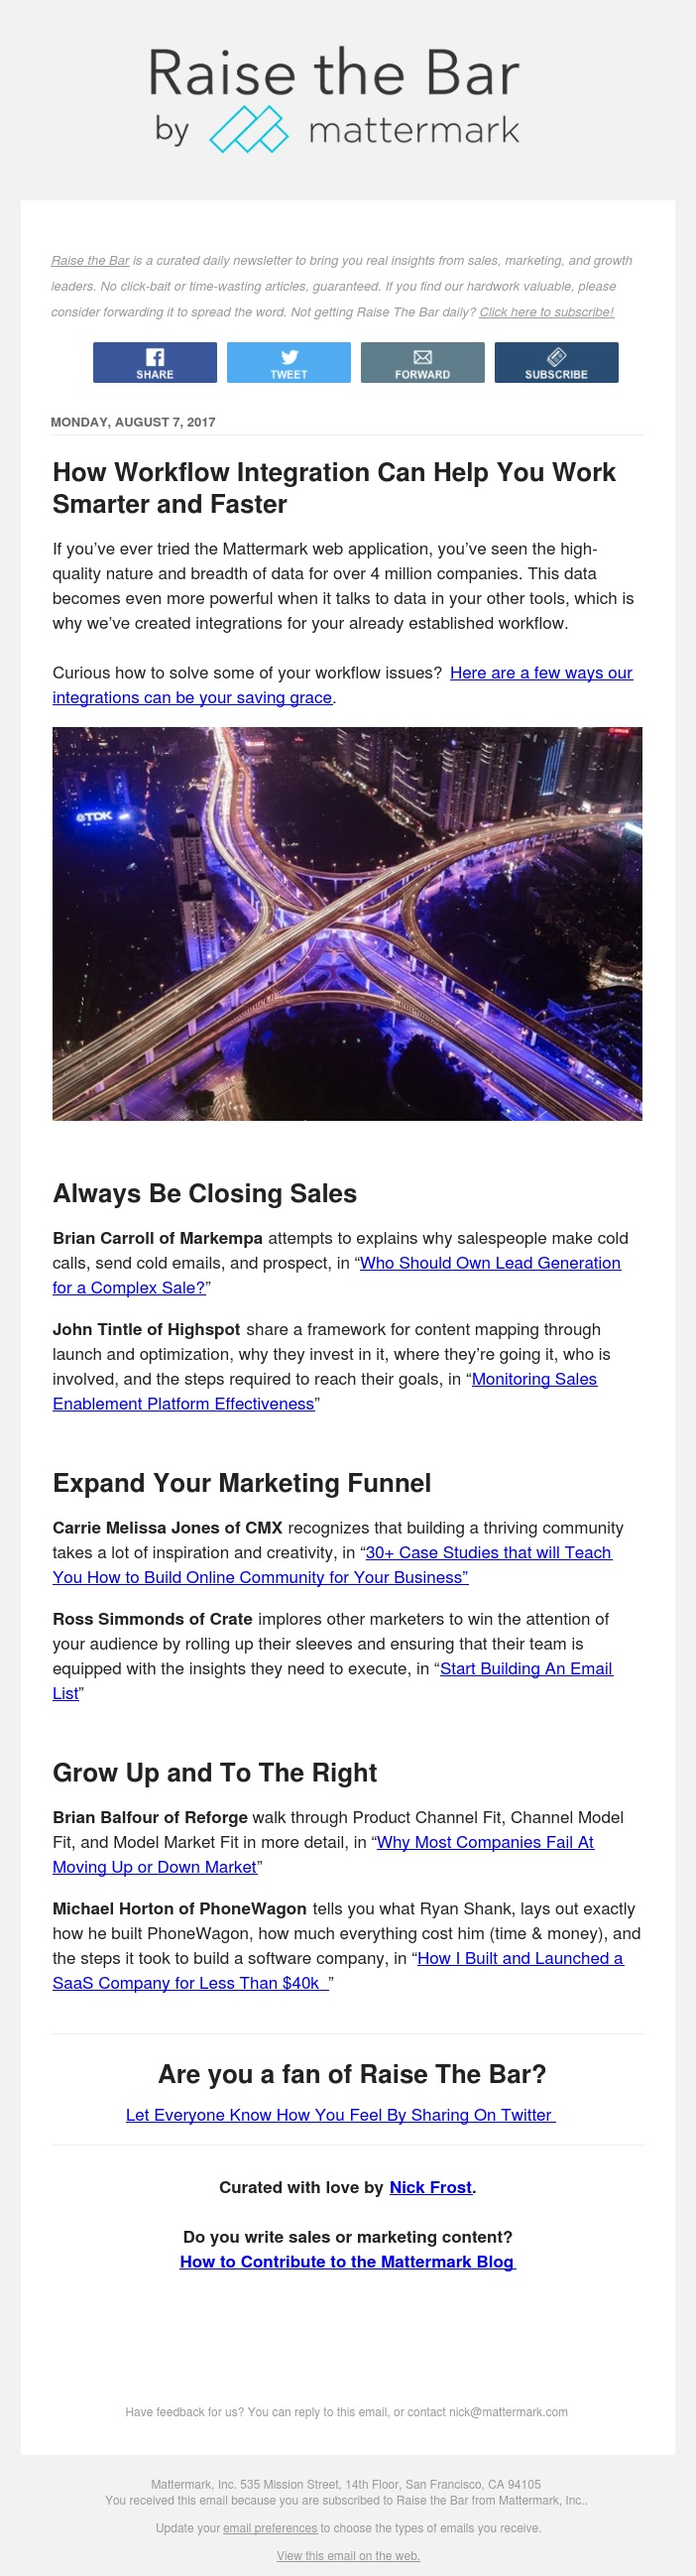 Raise The Bar - 30+ Marketing Case Studies, WTF is Lead Generation, and More